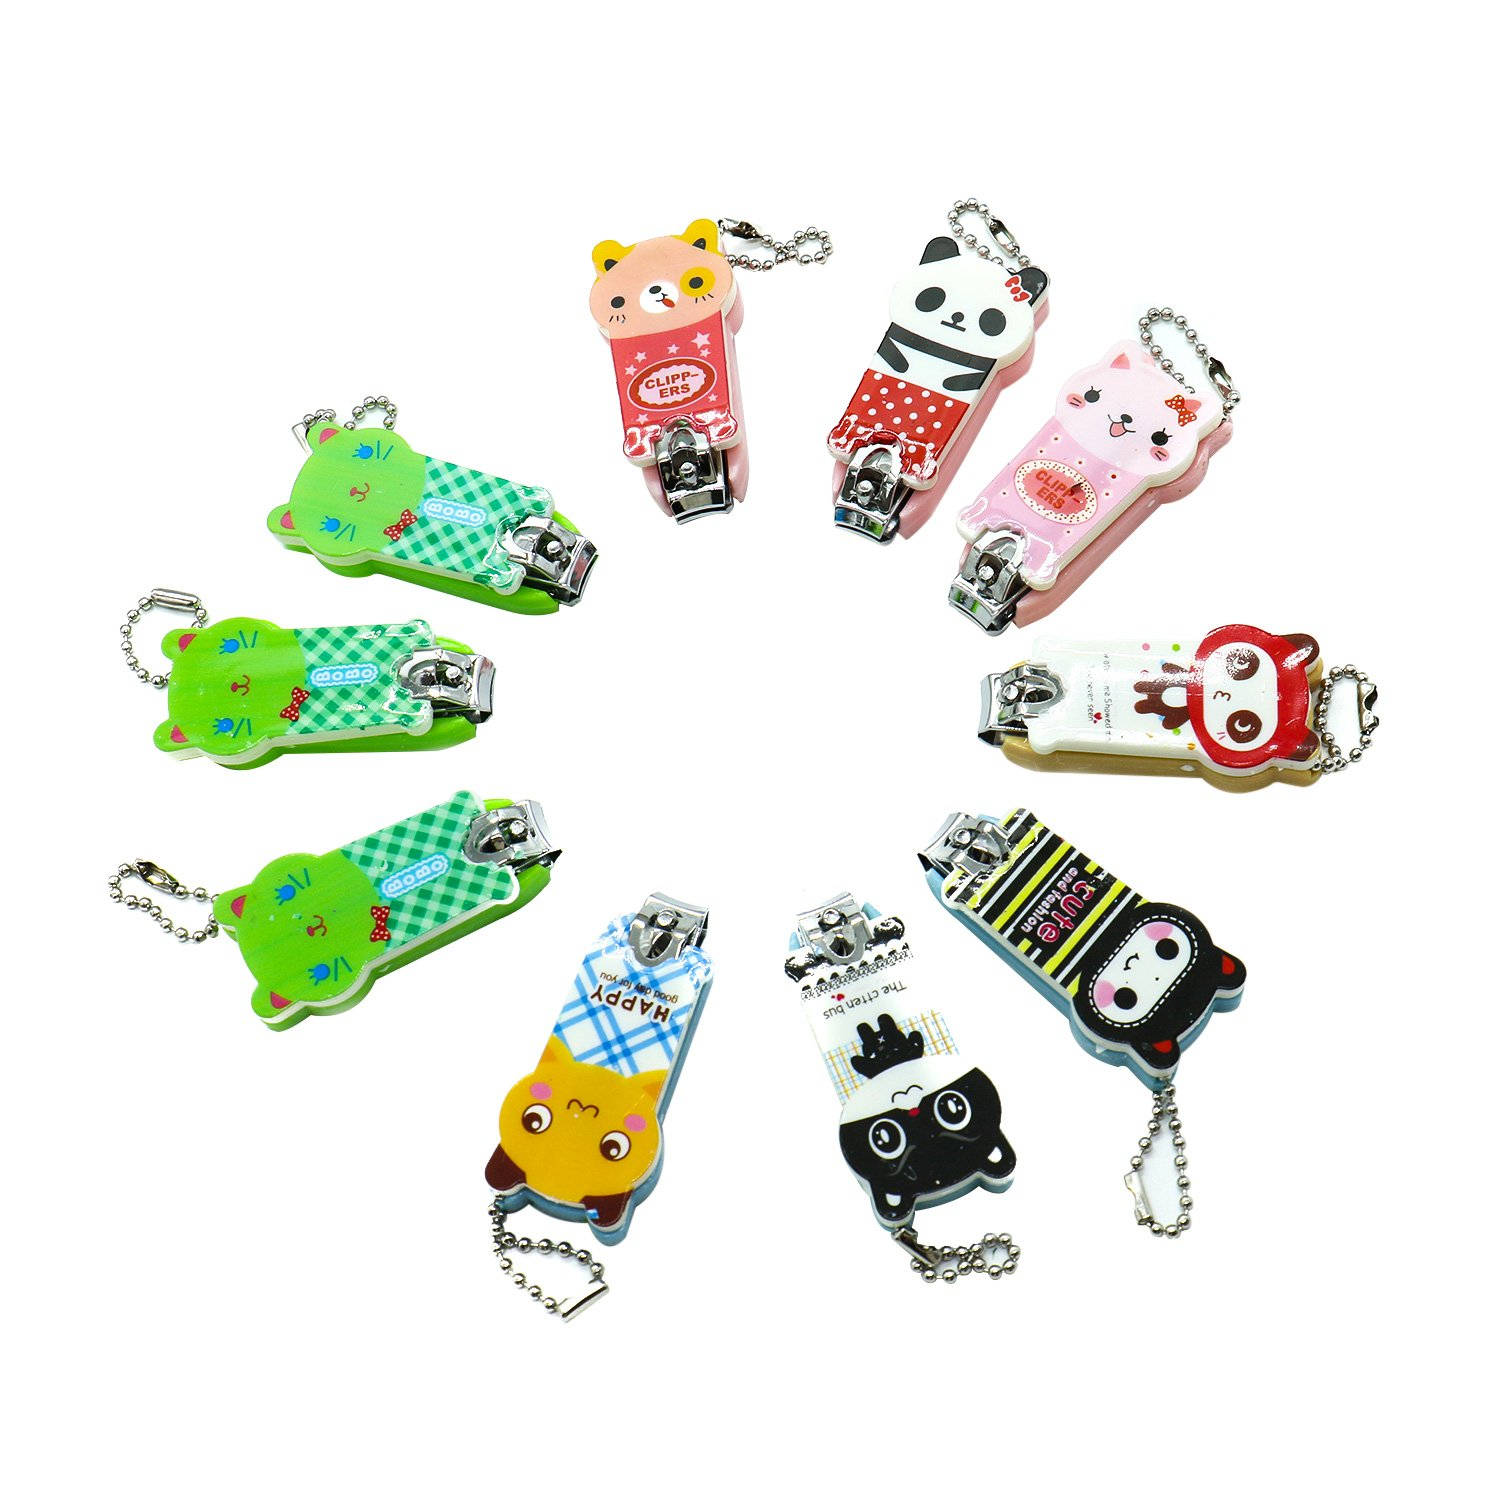 Pack Of 10 Cute Cartoon Stainless Steel Nail Cutter with Chain , Best Quality Nail Cutter IDS Manufacturer